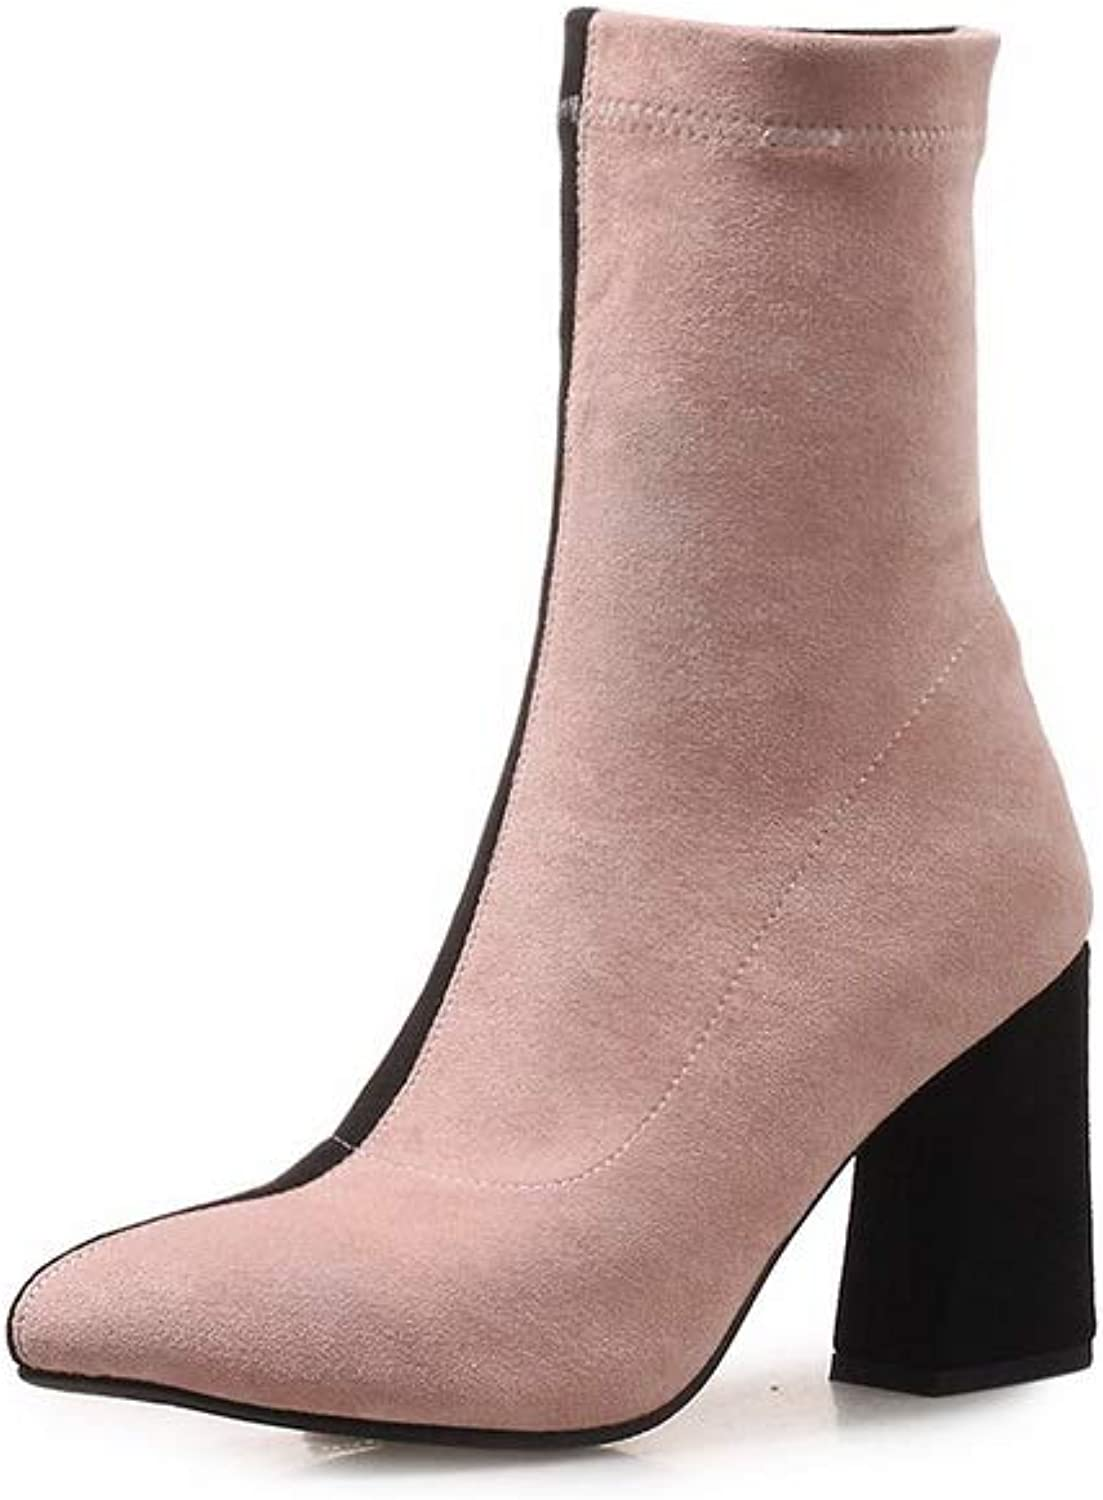 1TO9 Womens Square Heels Chunky Heels Assorted colors Imitated Suede Boots MNS03221